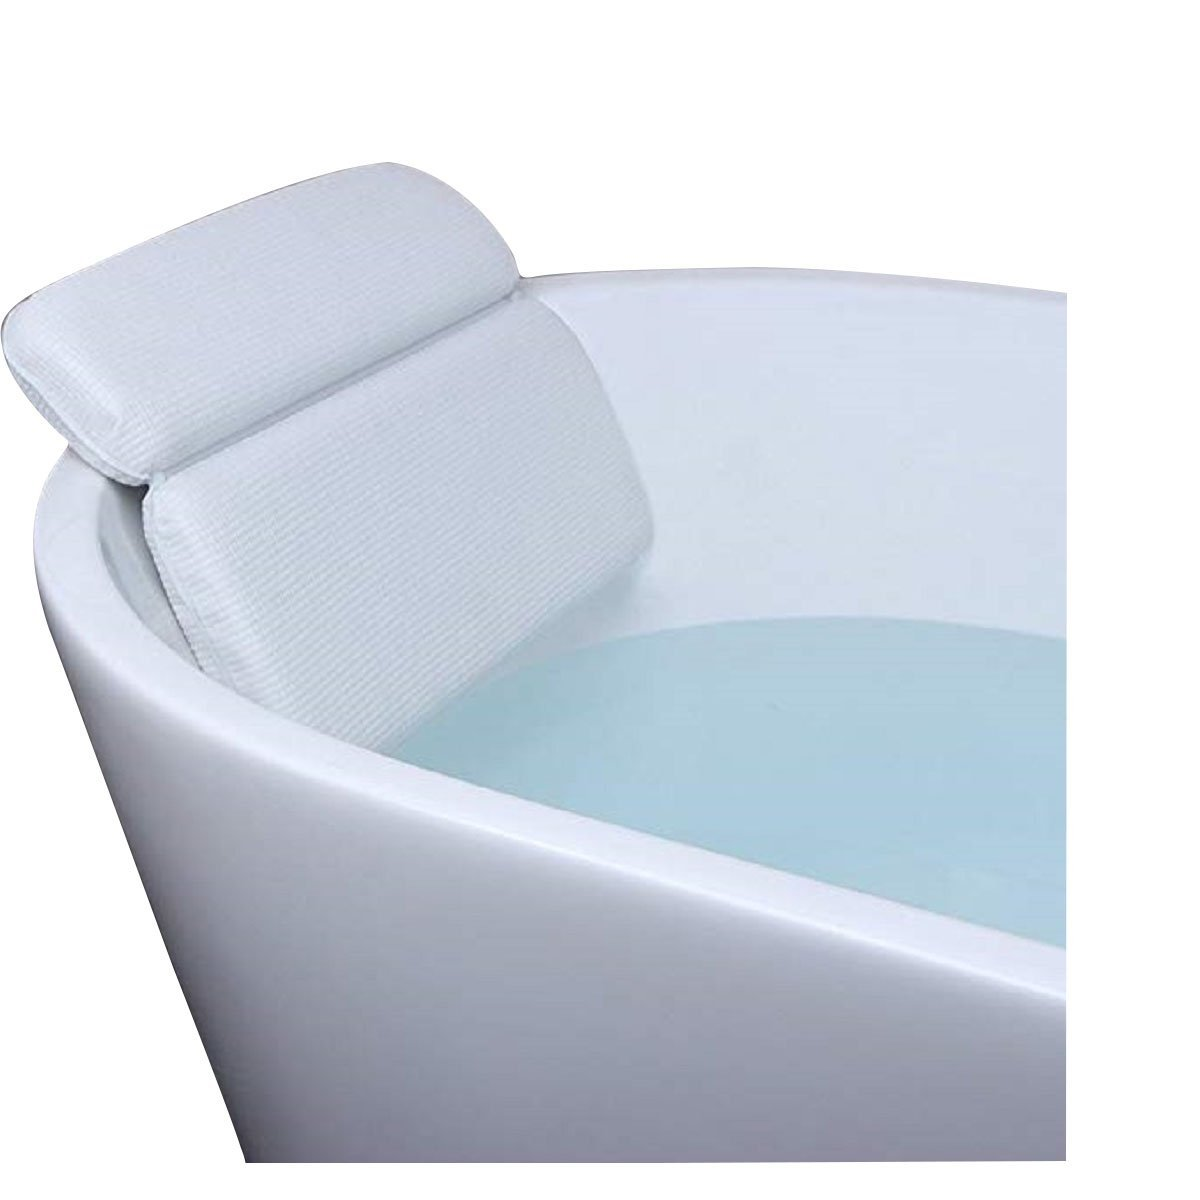 JMsDream Bathtub Pillow Spa Pillows with Strong Suction Cups Support Back and Neck, Anti-Mold/Mildew, Non-Slip, Comfortable Neck Headrest Waterproof